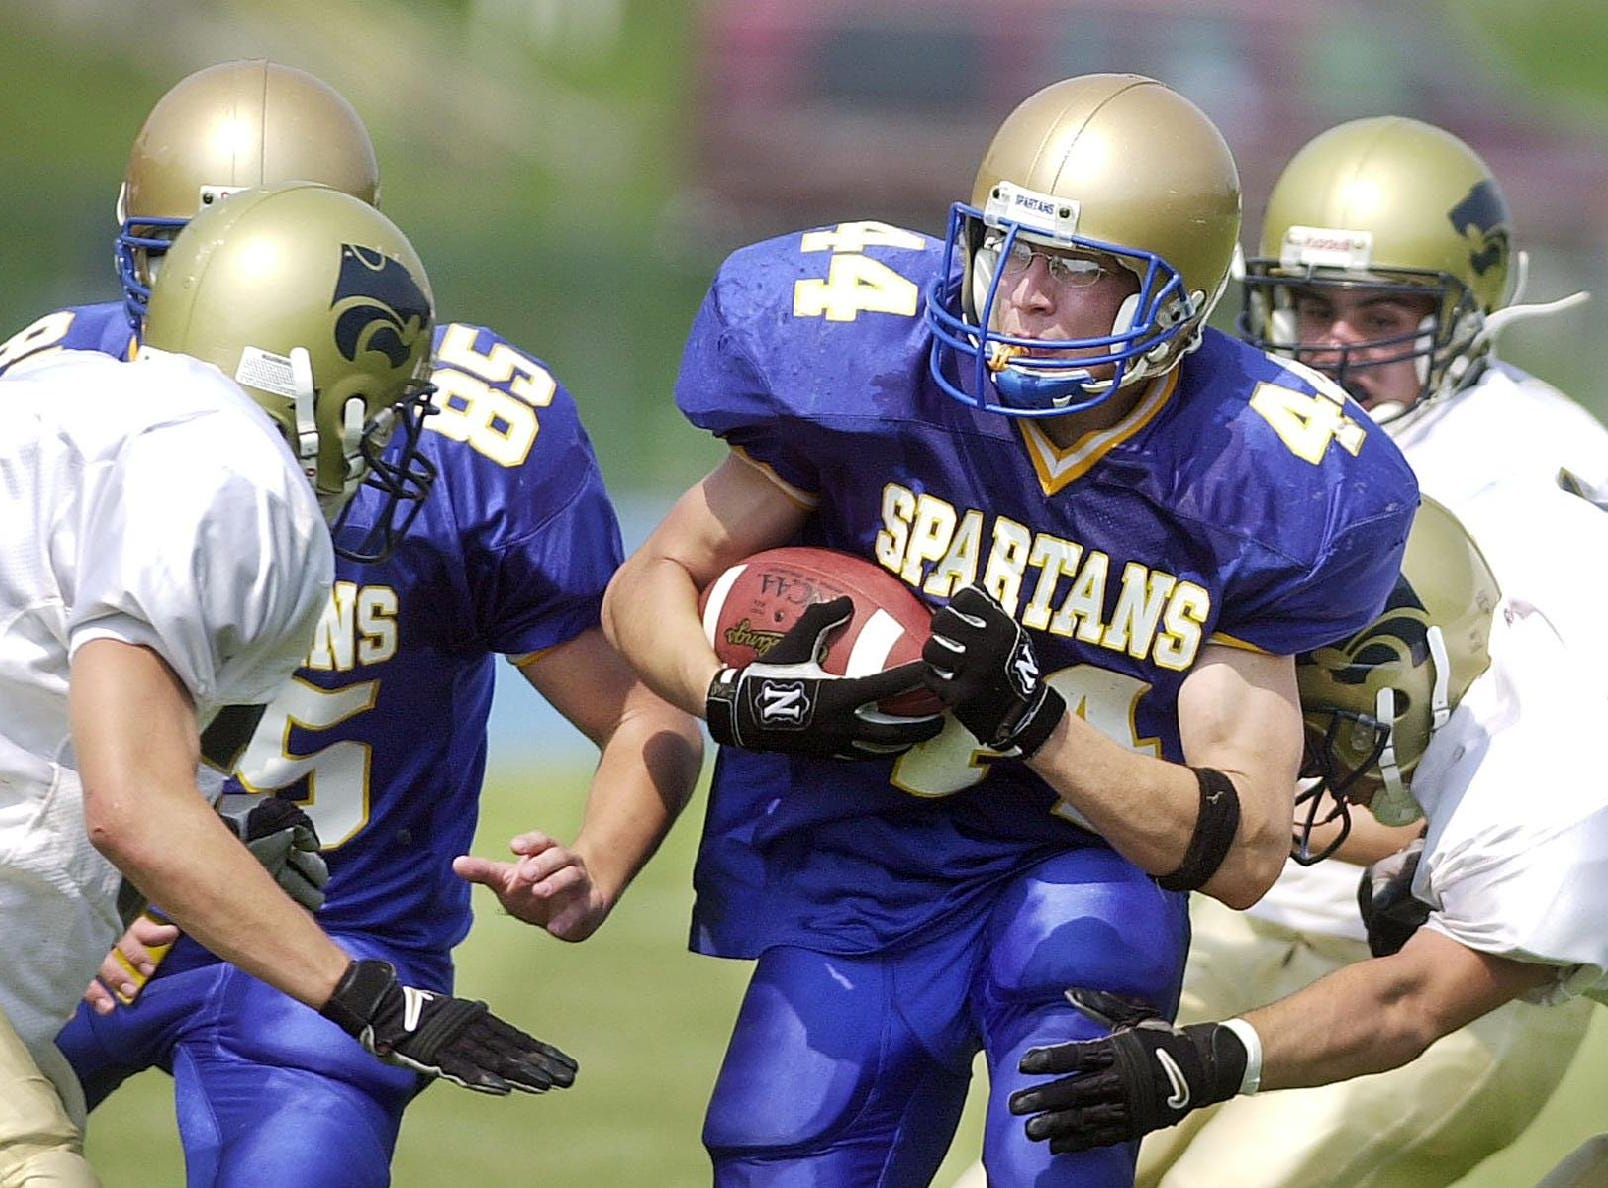 From 2001: SV Mike Masters, far left, and teammate Lucas Mooney pinch in on ME's Joe Frieser in the 2nd qtr of Sat's football game at ME.